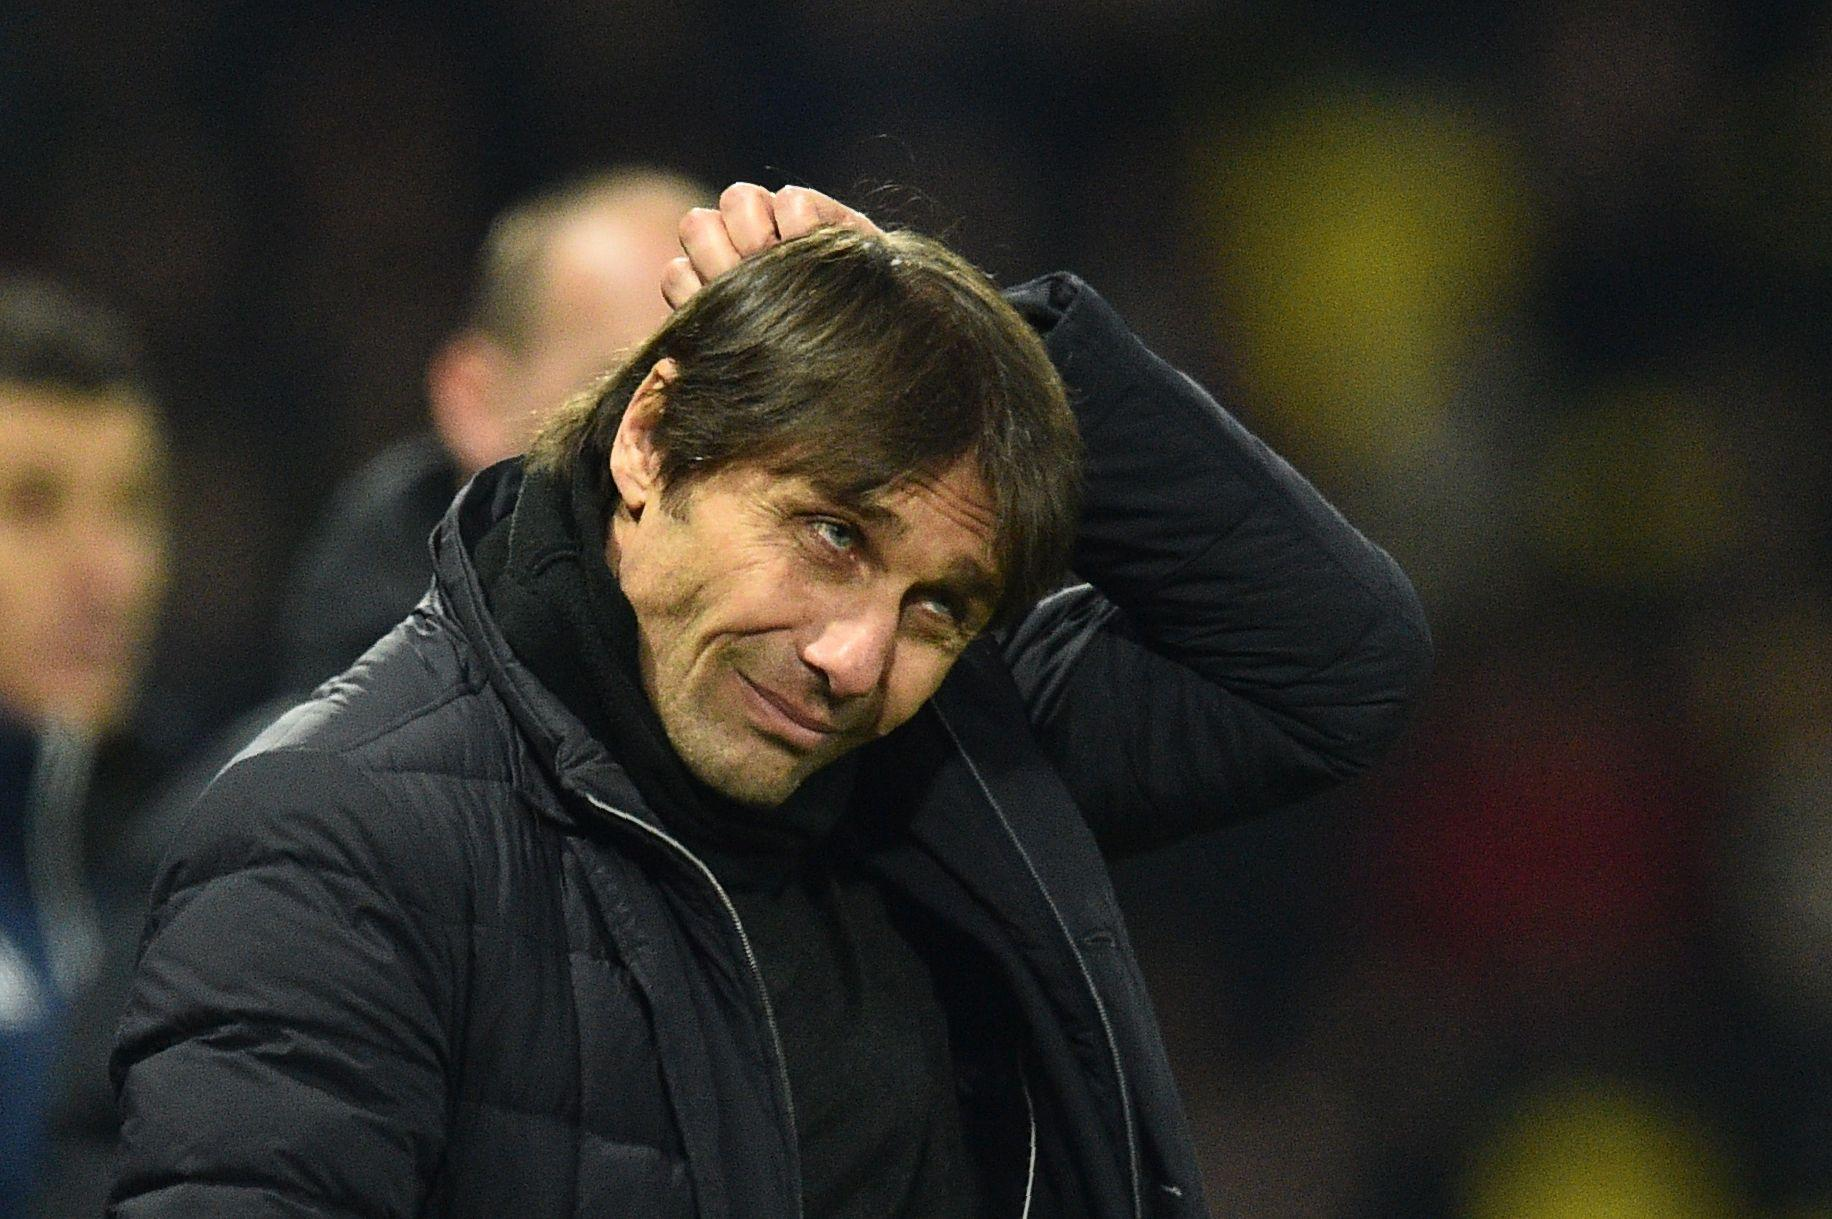 Conte could be out of a job very soon